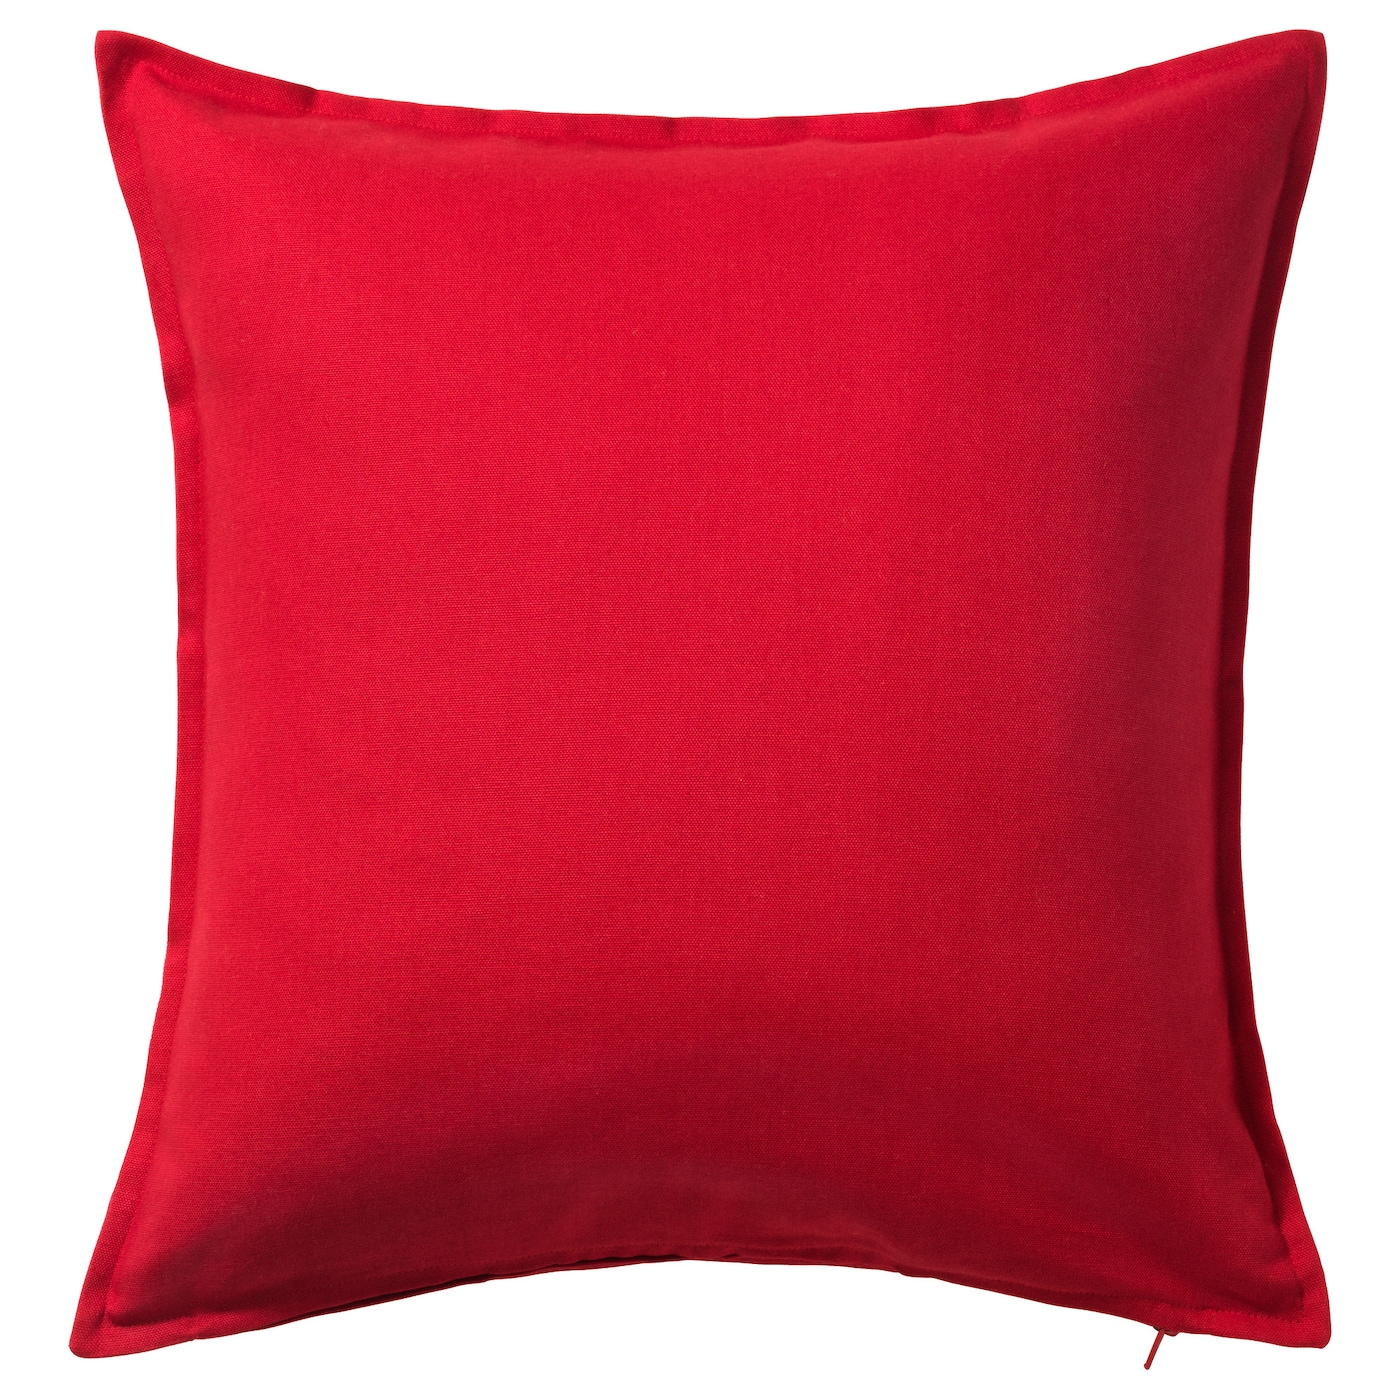 gurli cushion cover red 50 x 50 cm ikea. Black Bedroom Furniture Sets. Home Design Ideas